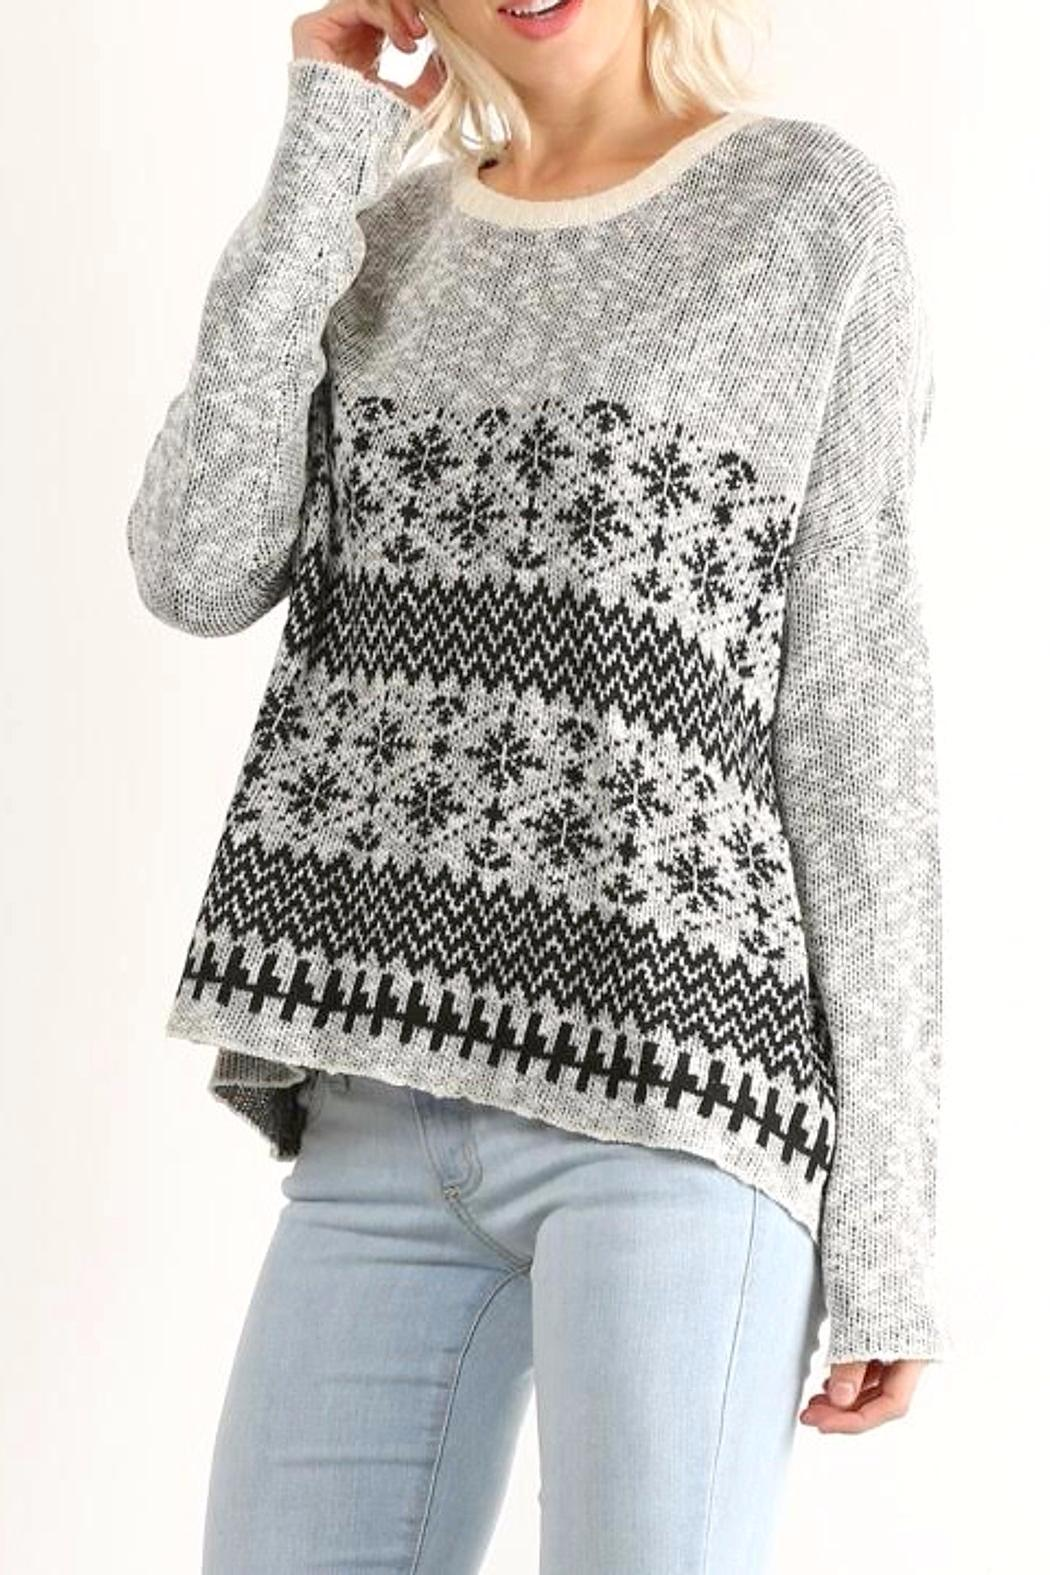 Hem & Thread Patterned Pullover Sweater - Main Image